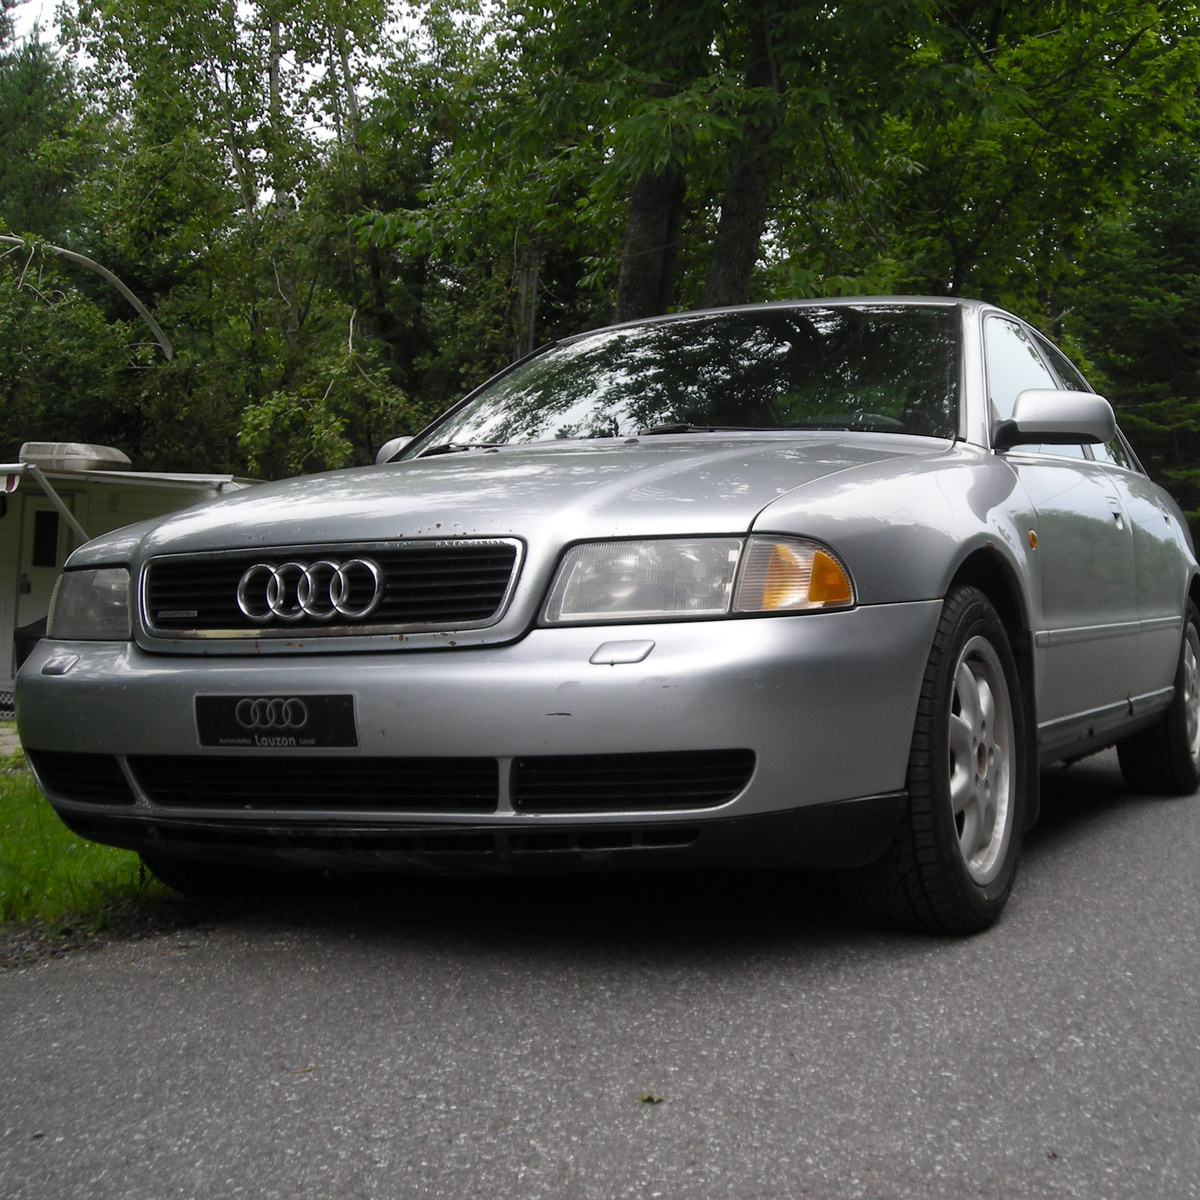 1999 audi a4 avant 1 8 quattro related infomation specifications weili automotive network. Black Bedroom Furniture Sets. Home Design Ideas